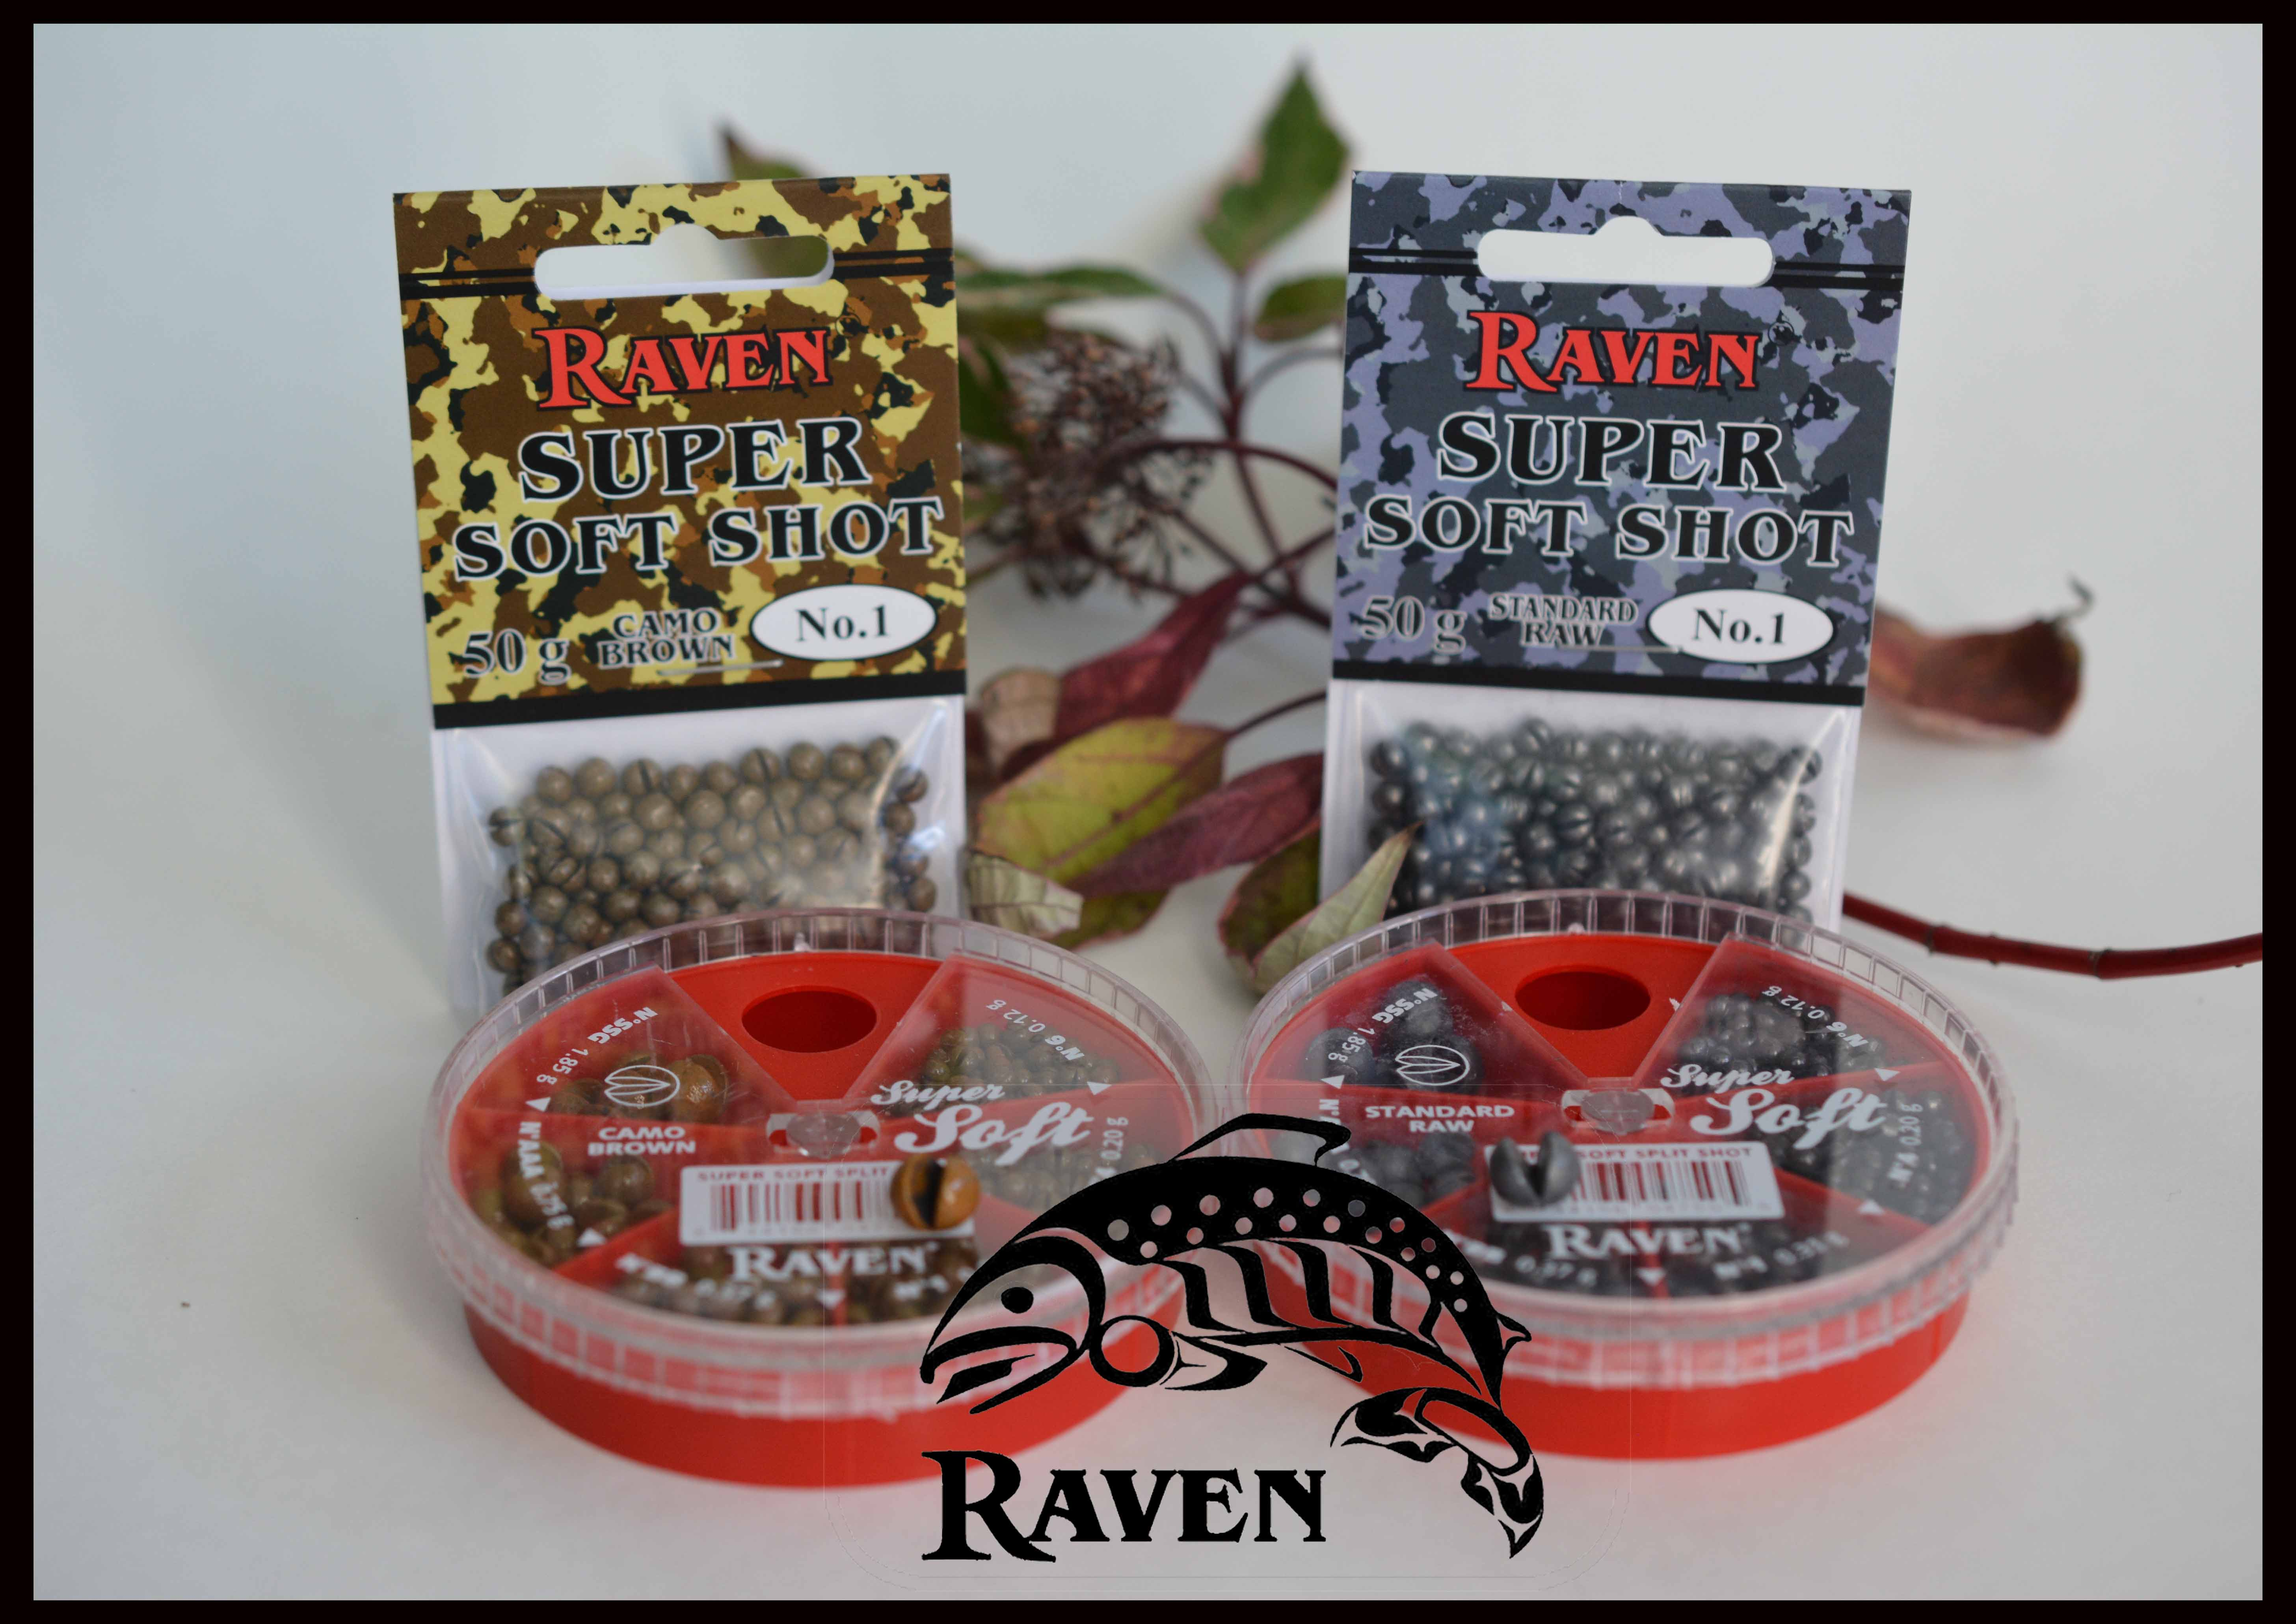 raven-supersoft-lead-split-shot-1-camo